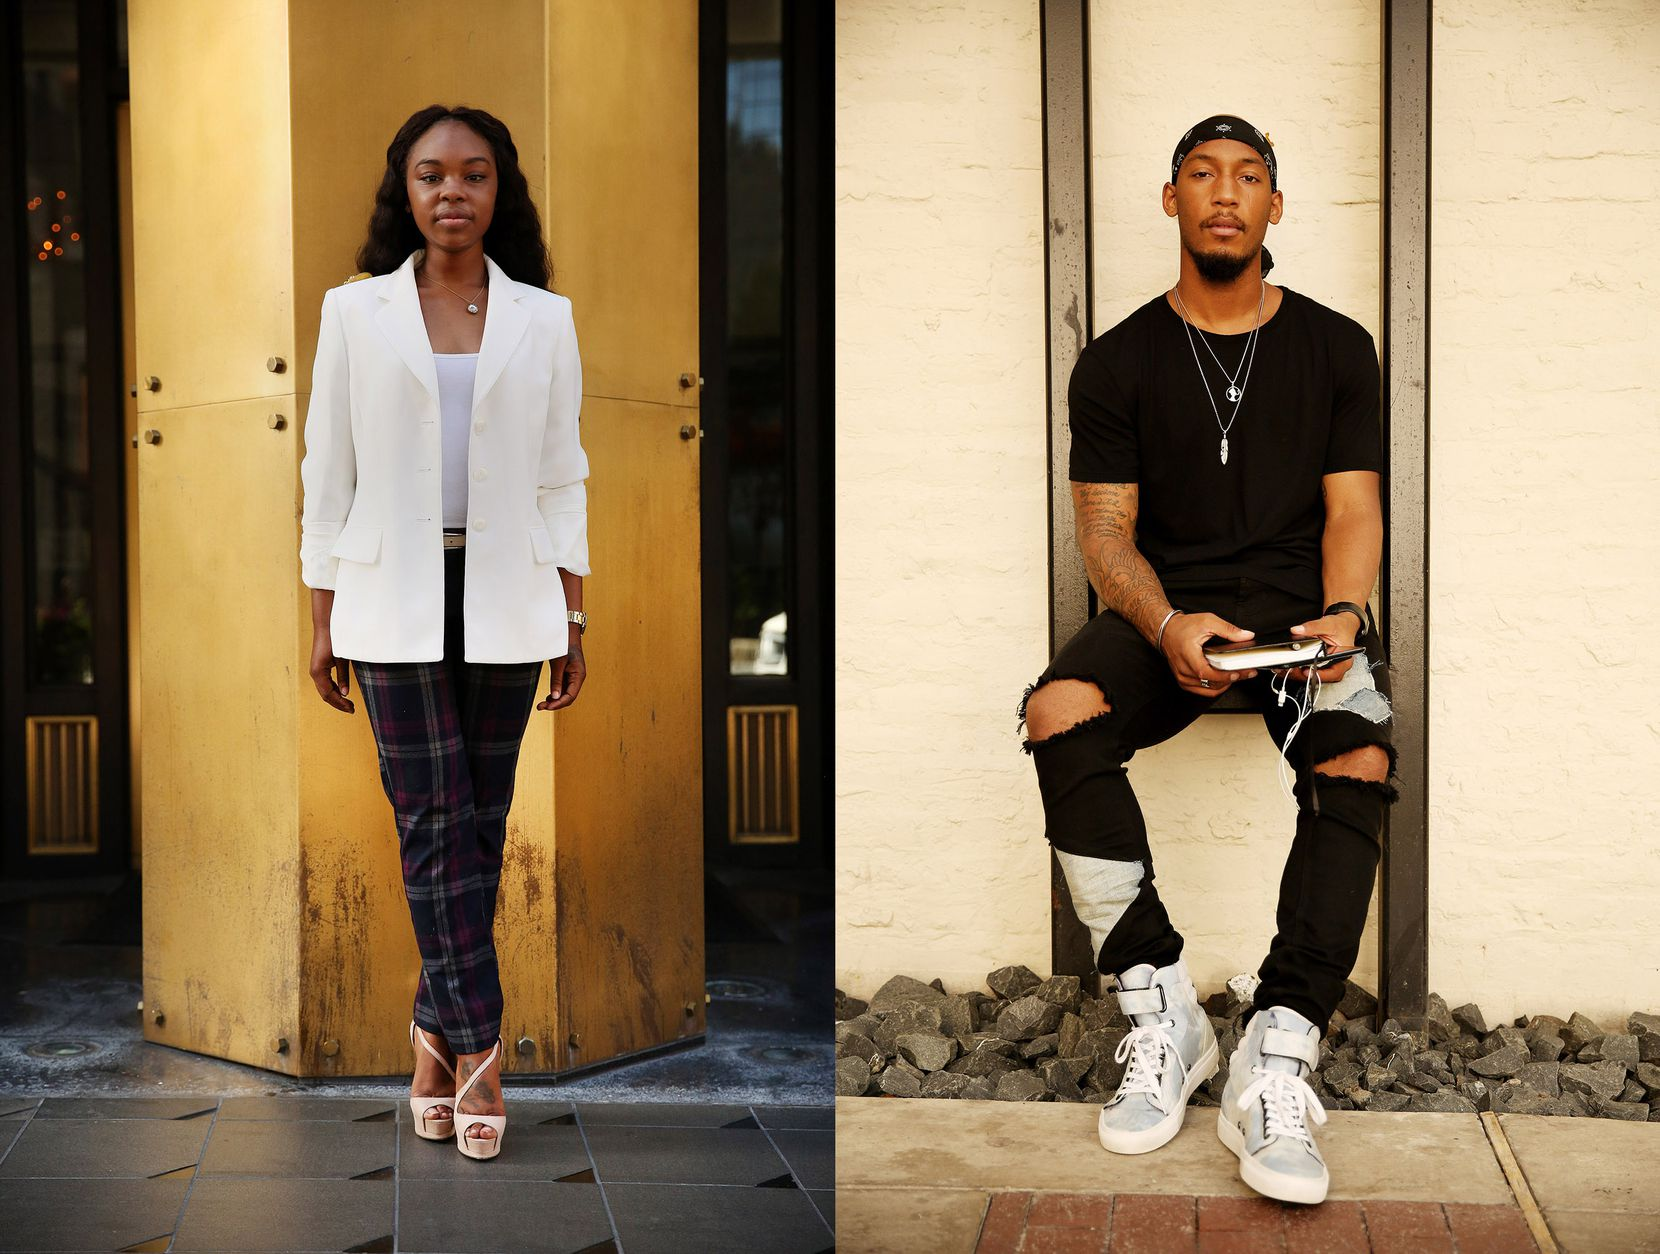 Ashli King (left) a personal wardrobe stylist at Neiman Marcus, was photographed along Main Street. Carlos Harris, a lifestyle, fashion, fitness blogger, was photographed in the alley connecting Commerce and Main Streets. Both were photographed on  July 11.